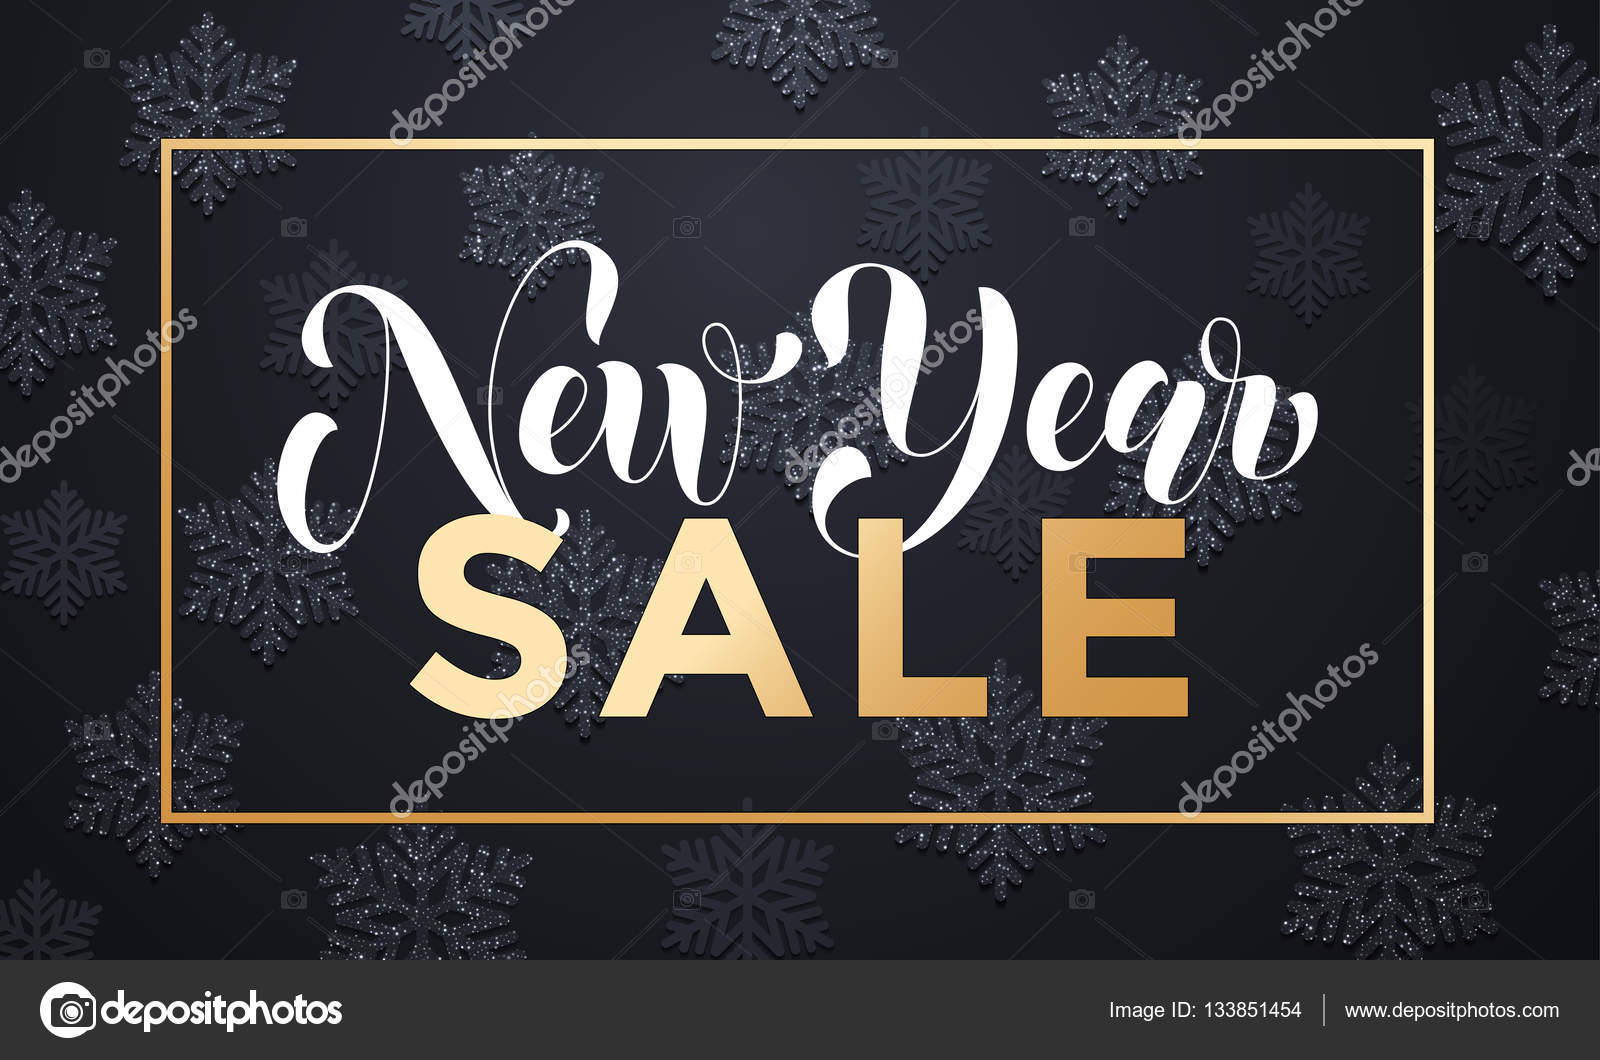 sale banner background for new year shopping sale gold glittering frame flat text with shadow snowflakes pattern design with for web online store or shop